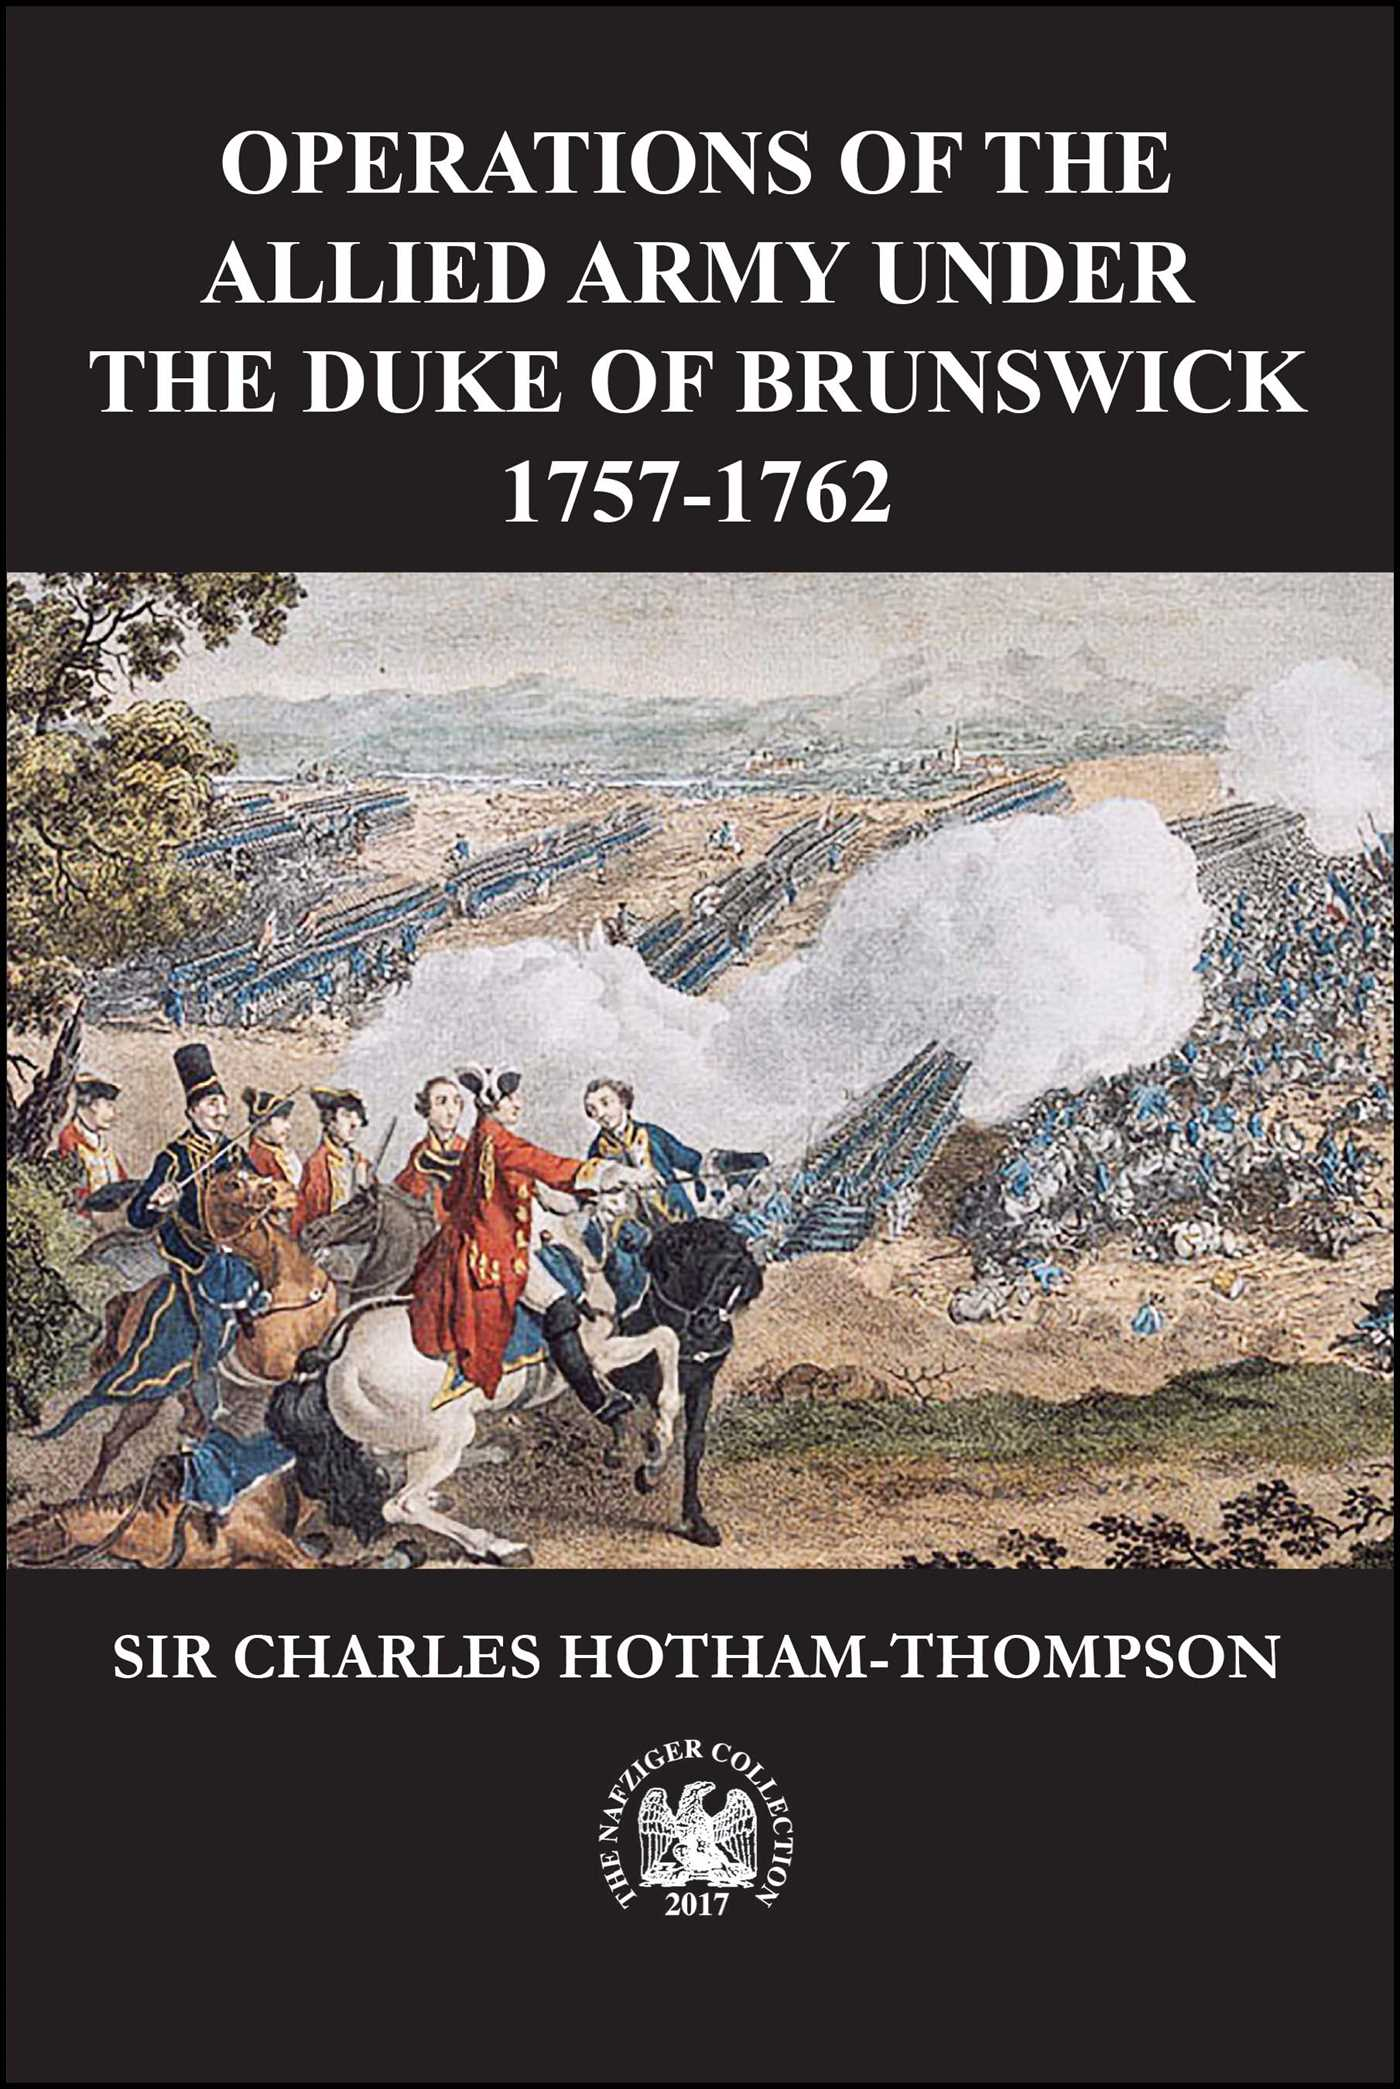 Operations of the Allied Army Under the Duke of Brunswick | Book by